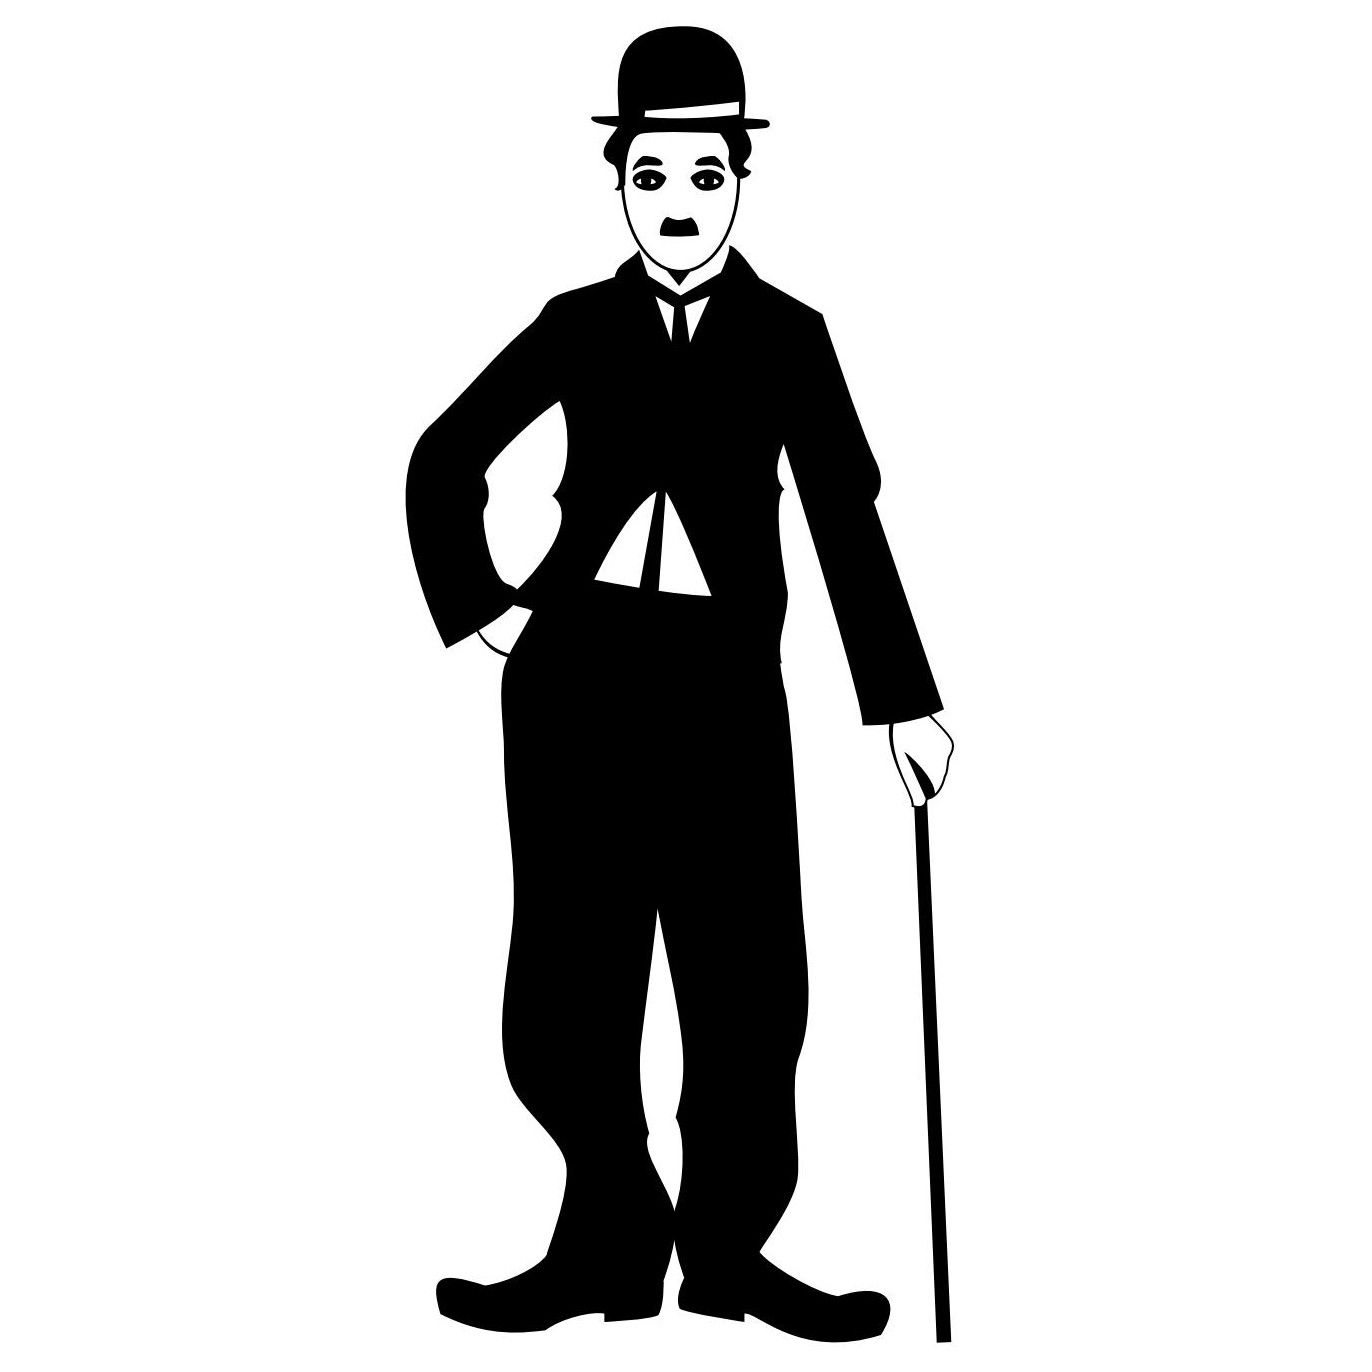 charlie chaplin portrait silhouettes vector pinterest portraits silhouettes and stenciling. Black Bedroom Furniture Sets. Home Design Ideas